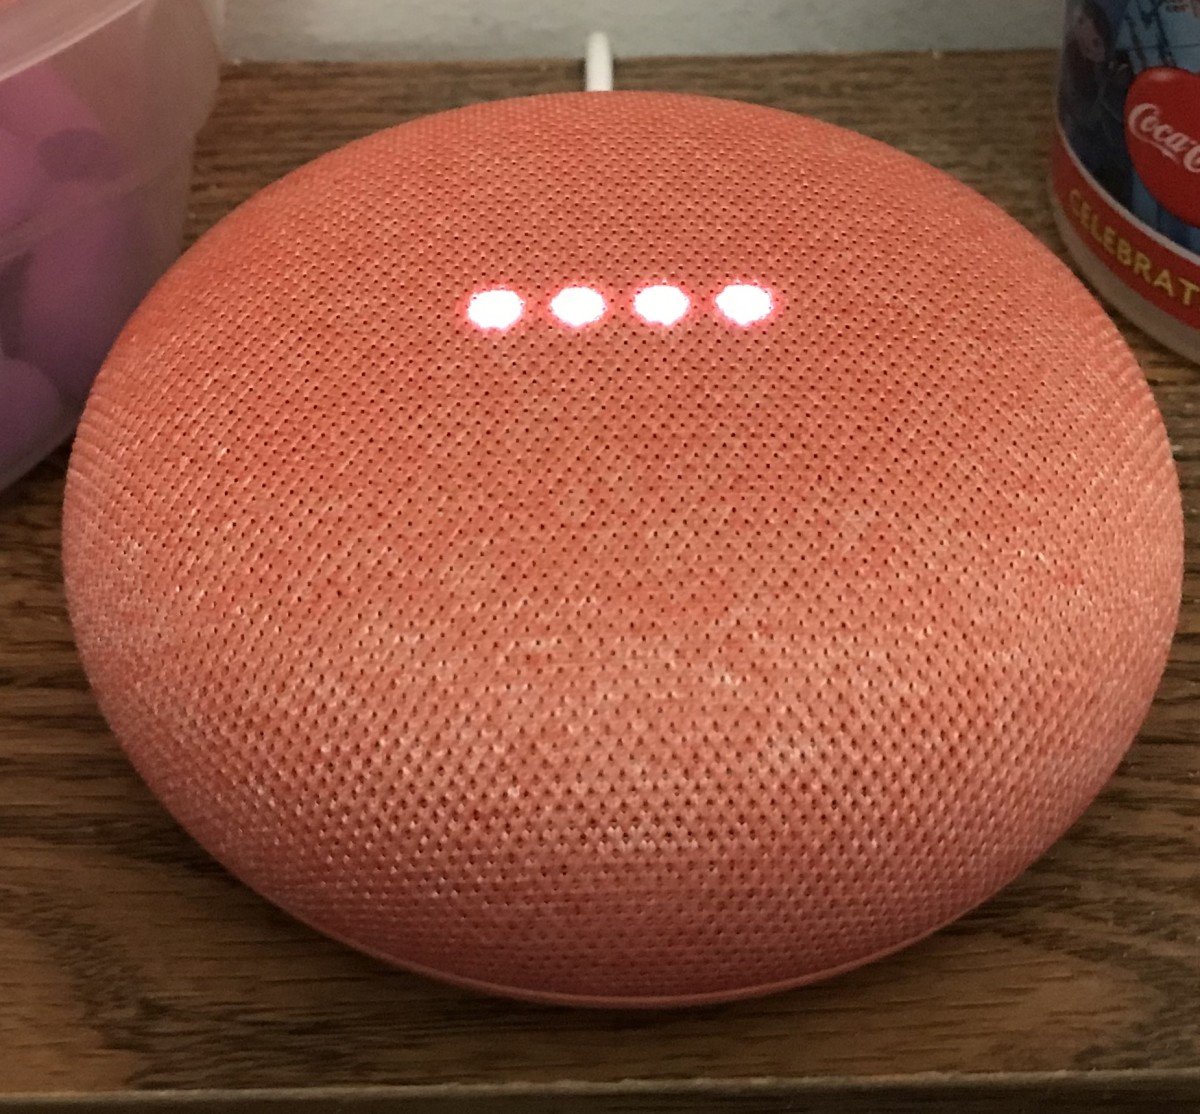 Coral (red) version of the Google Home Mini smart speaker